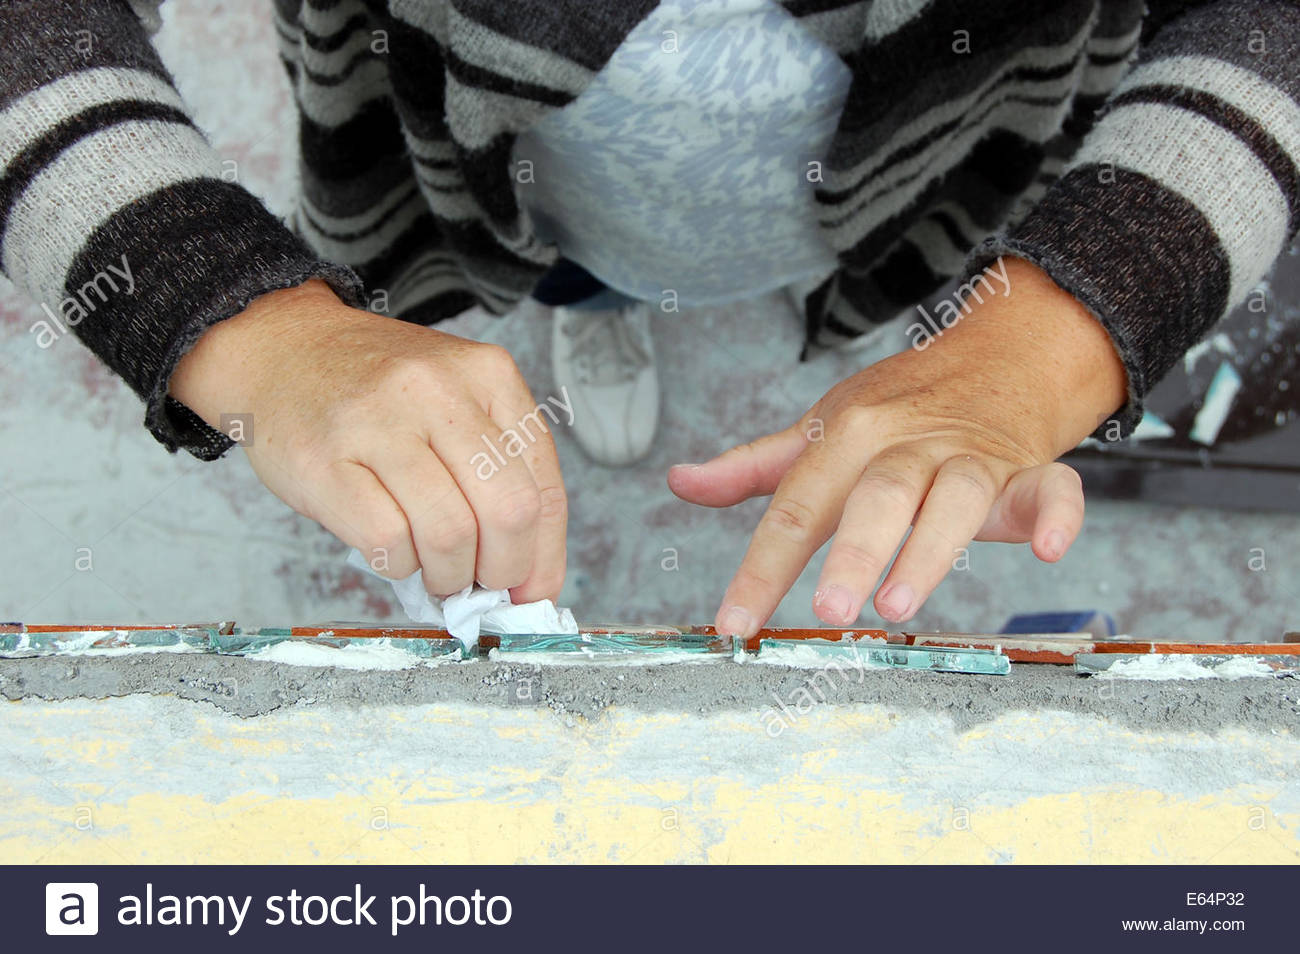 Closeup view of peoples hands doing arts and crafts ceramic tile closeup view of peoples hands doing arts and crafts ceramic tile mural work with plaster and grout dailygadgetfo Images